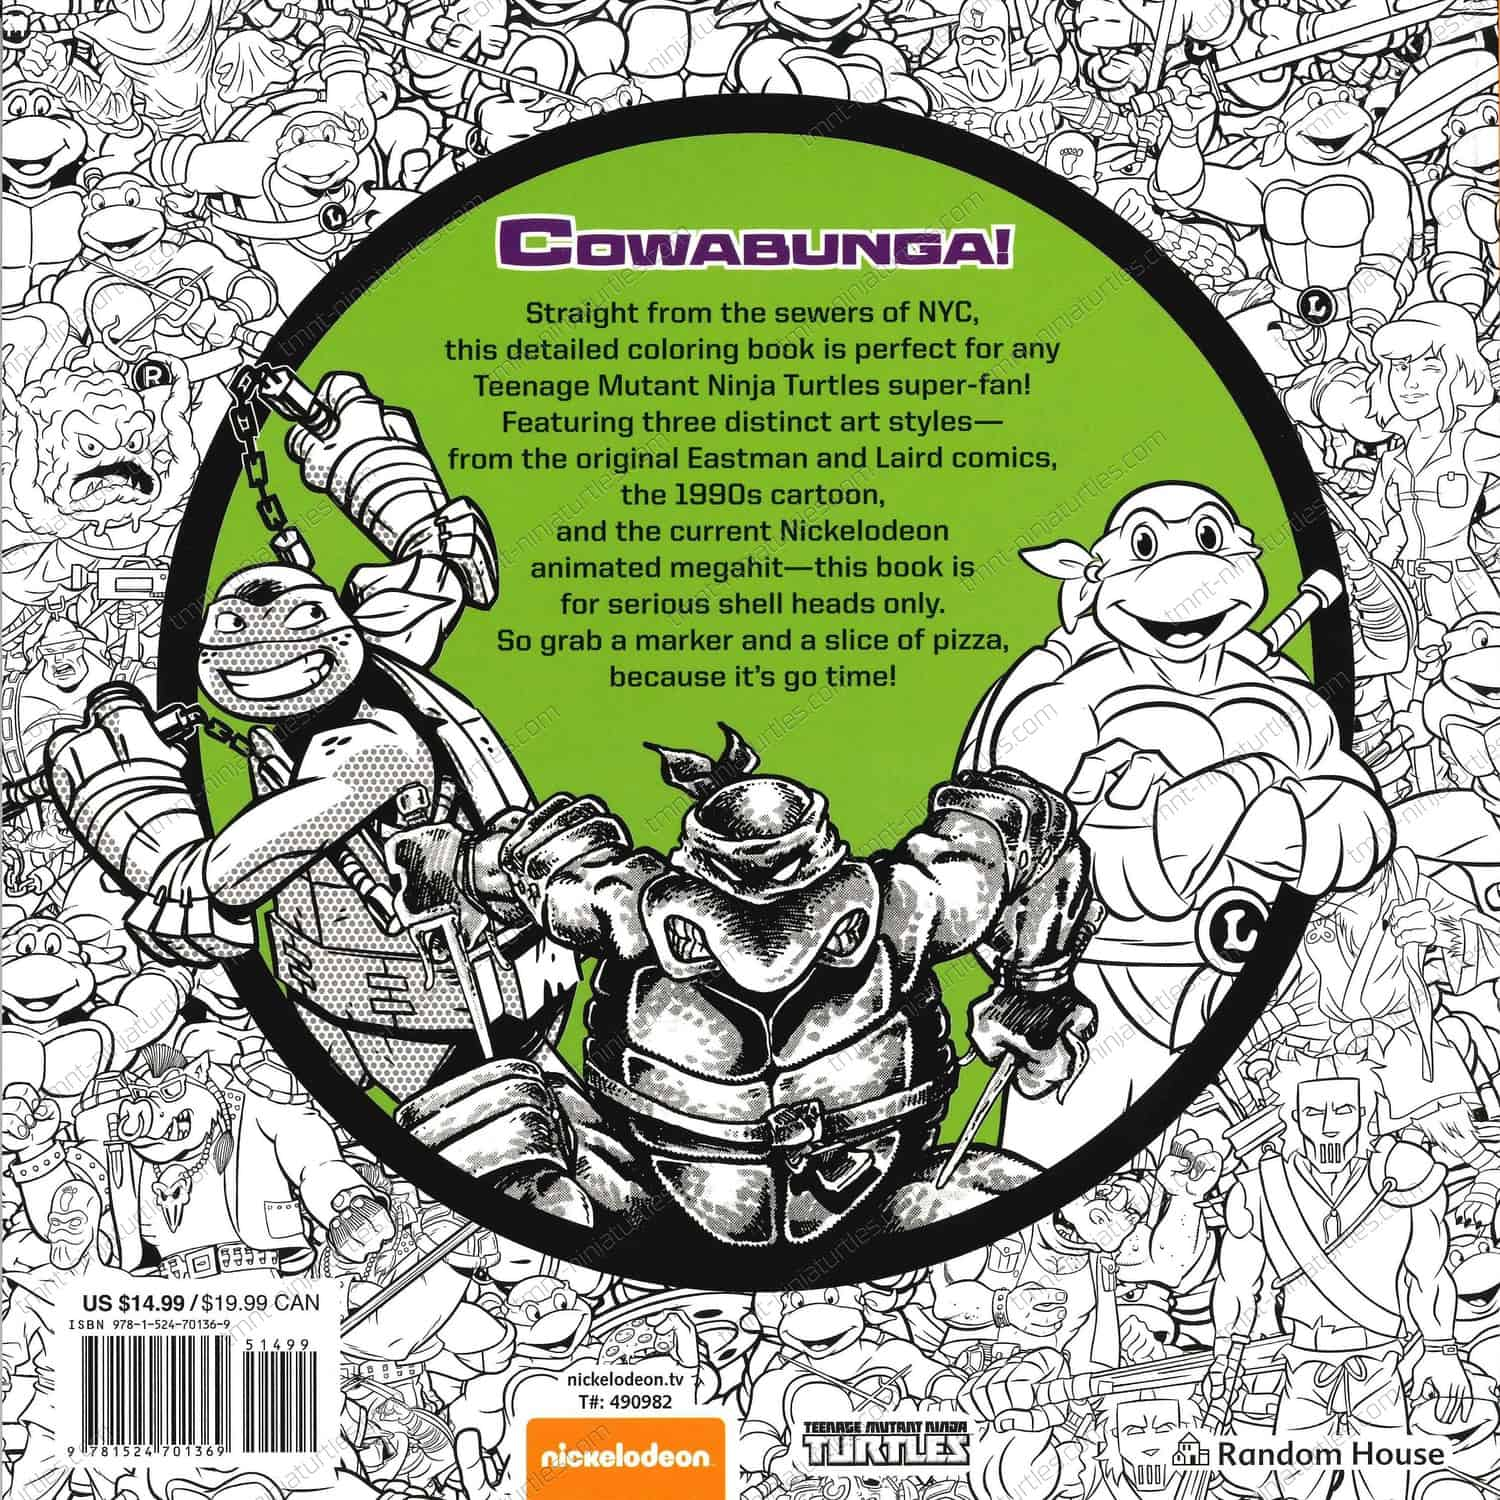 Tmnt Kickin It Old School Coloring Book 1st Print Aug